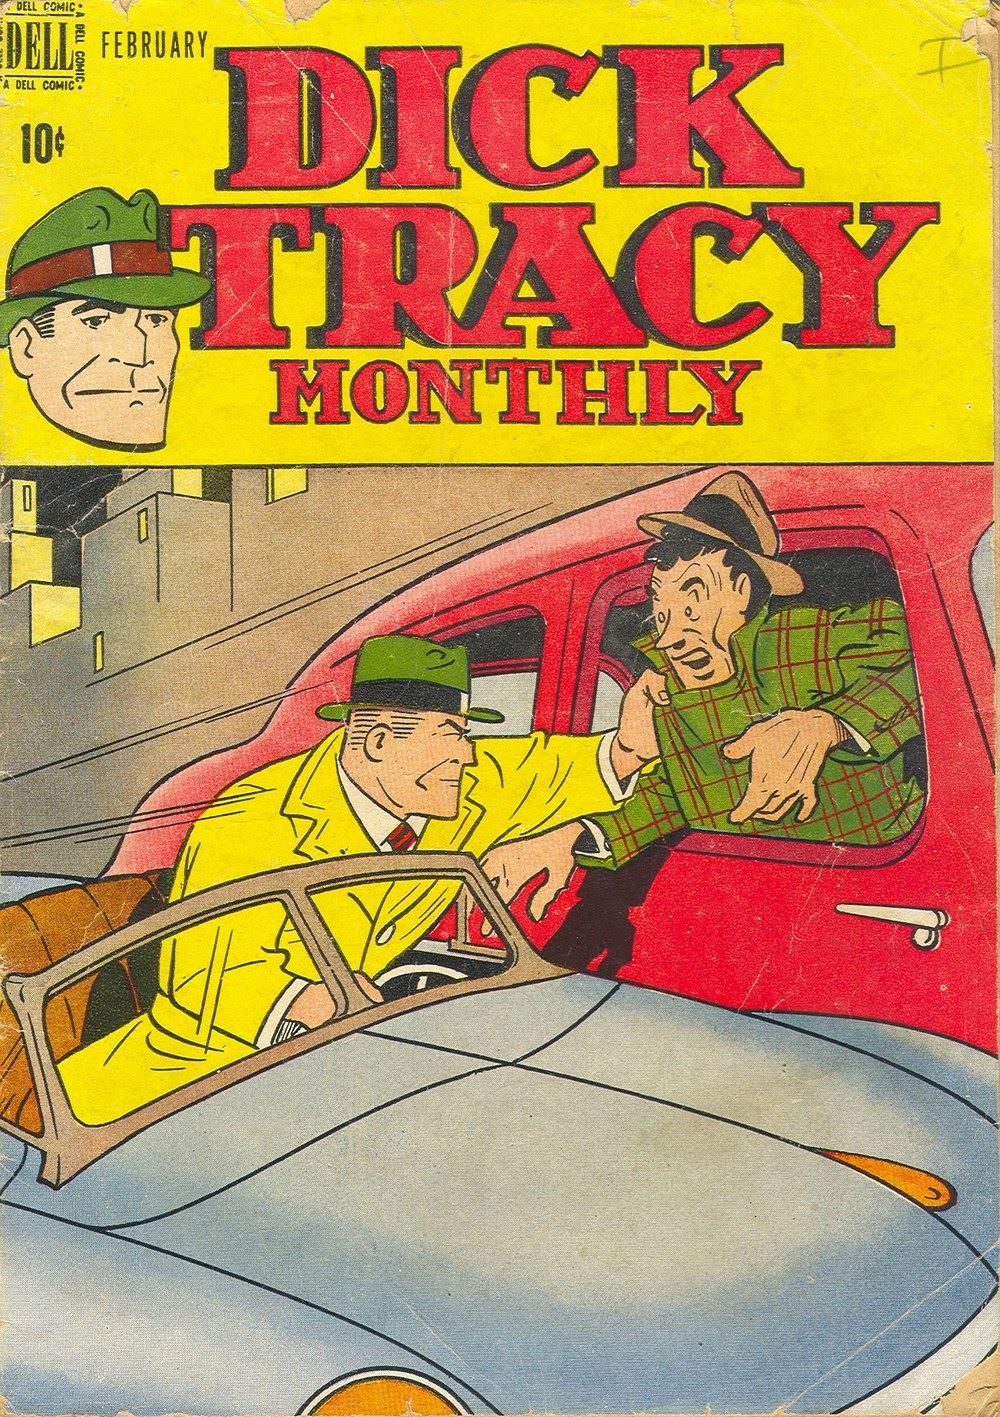 Dick Tracy Monthly issue 14 - Page 1